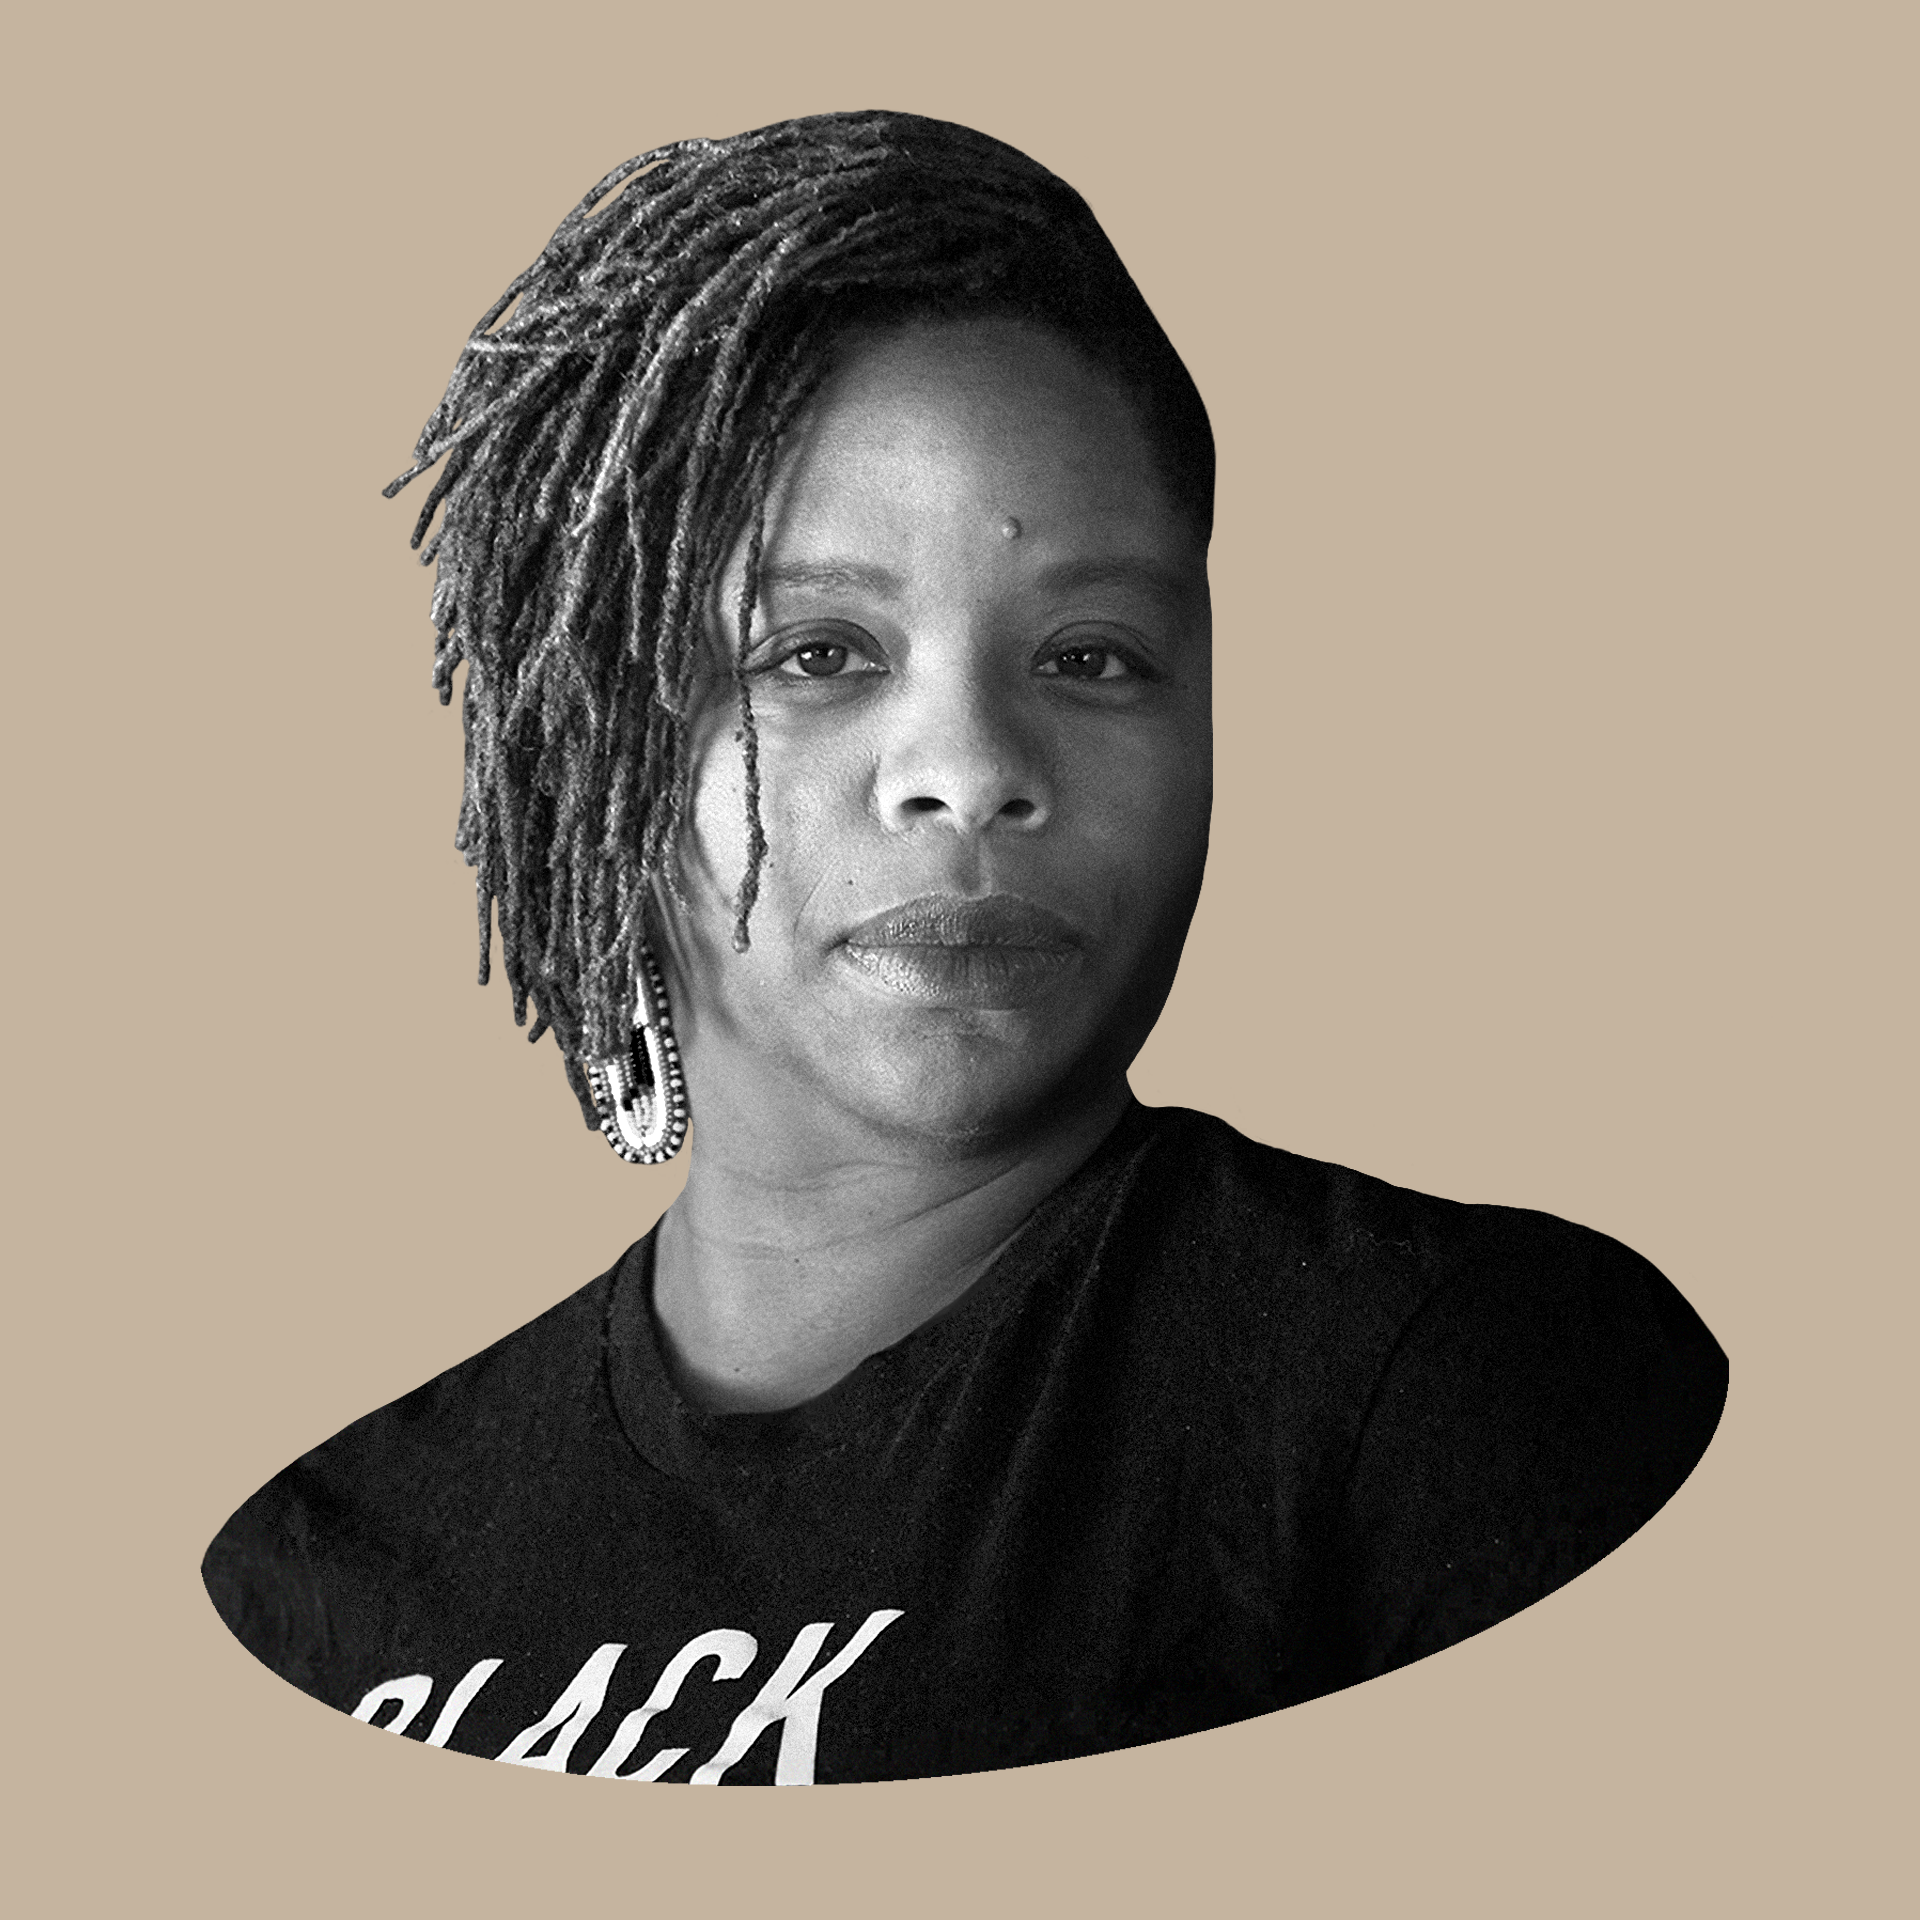 Headshot of Patrisse Cullors